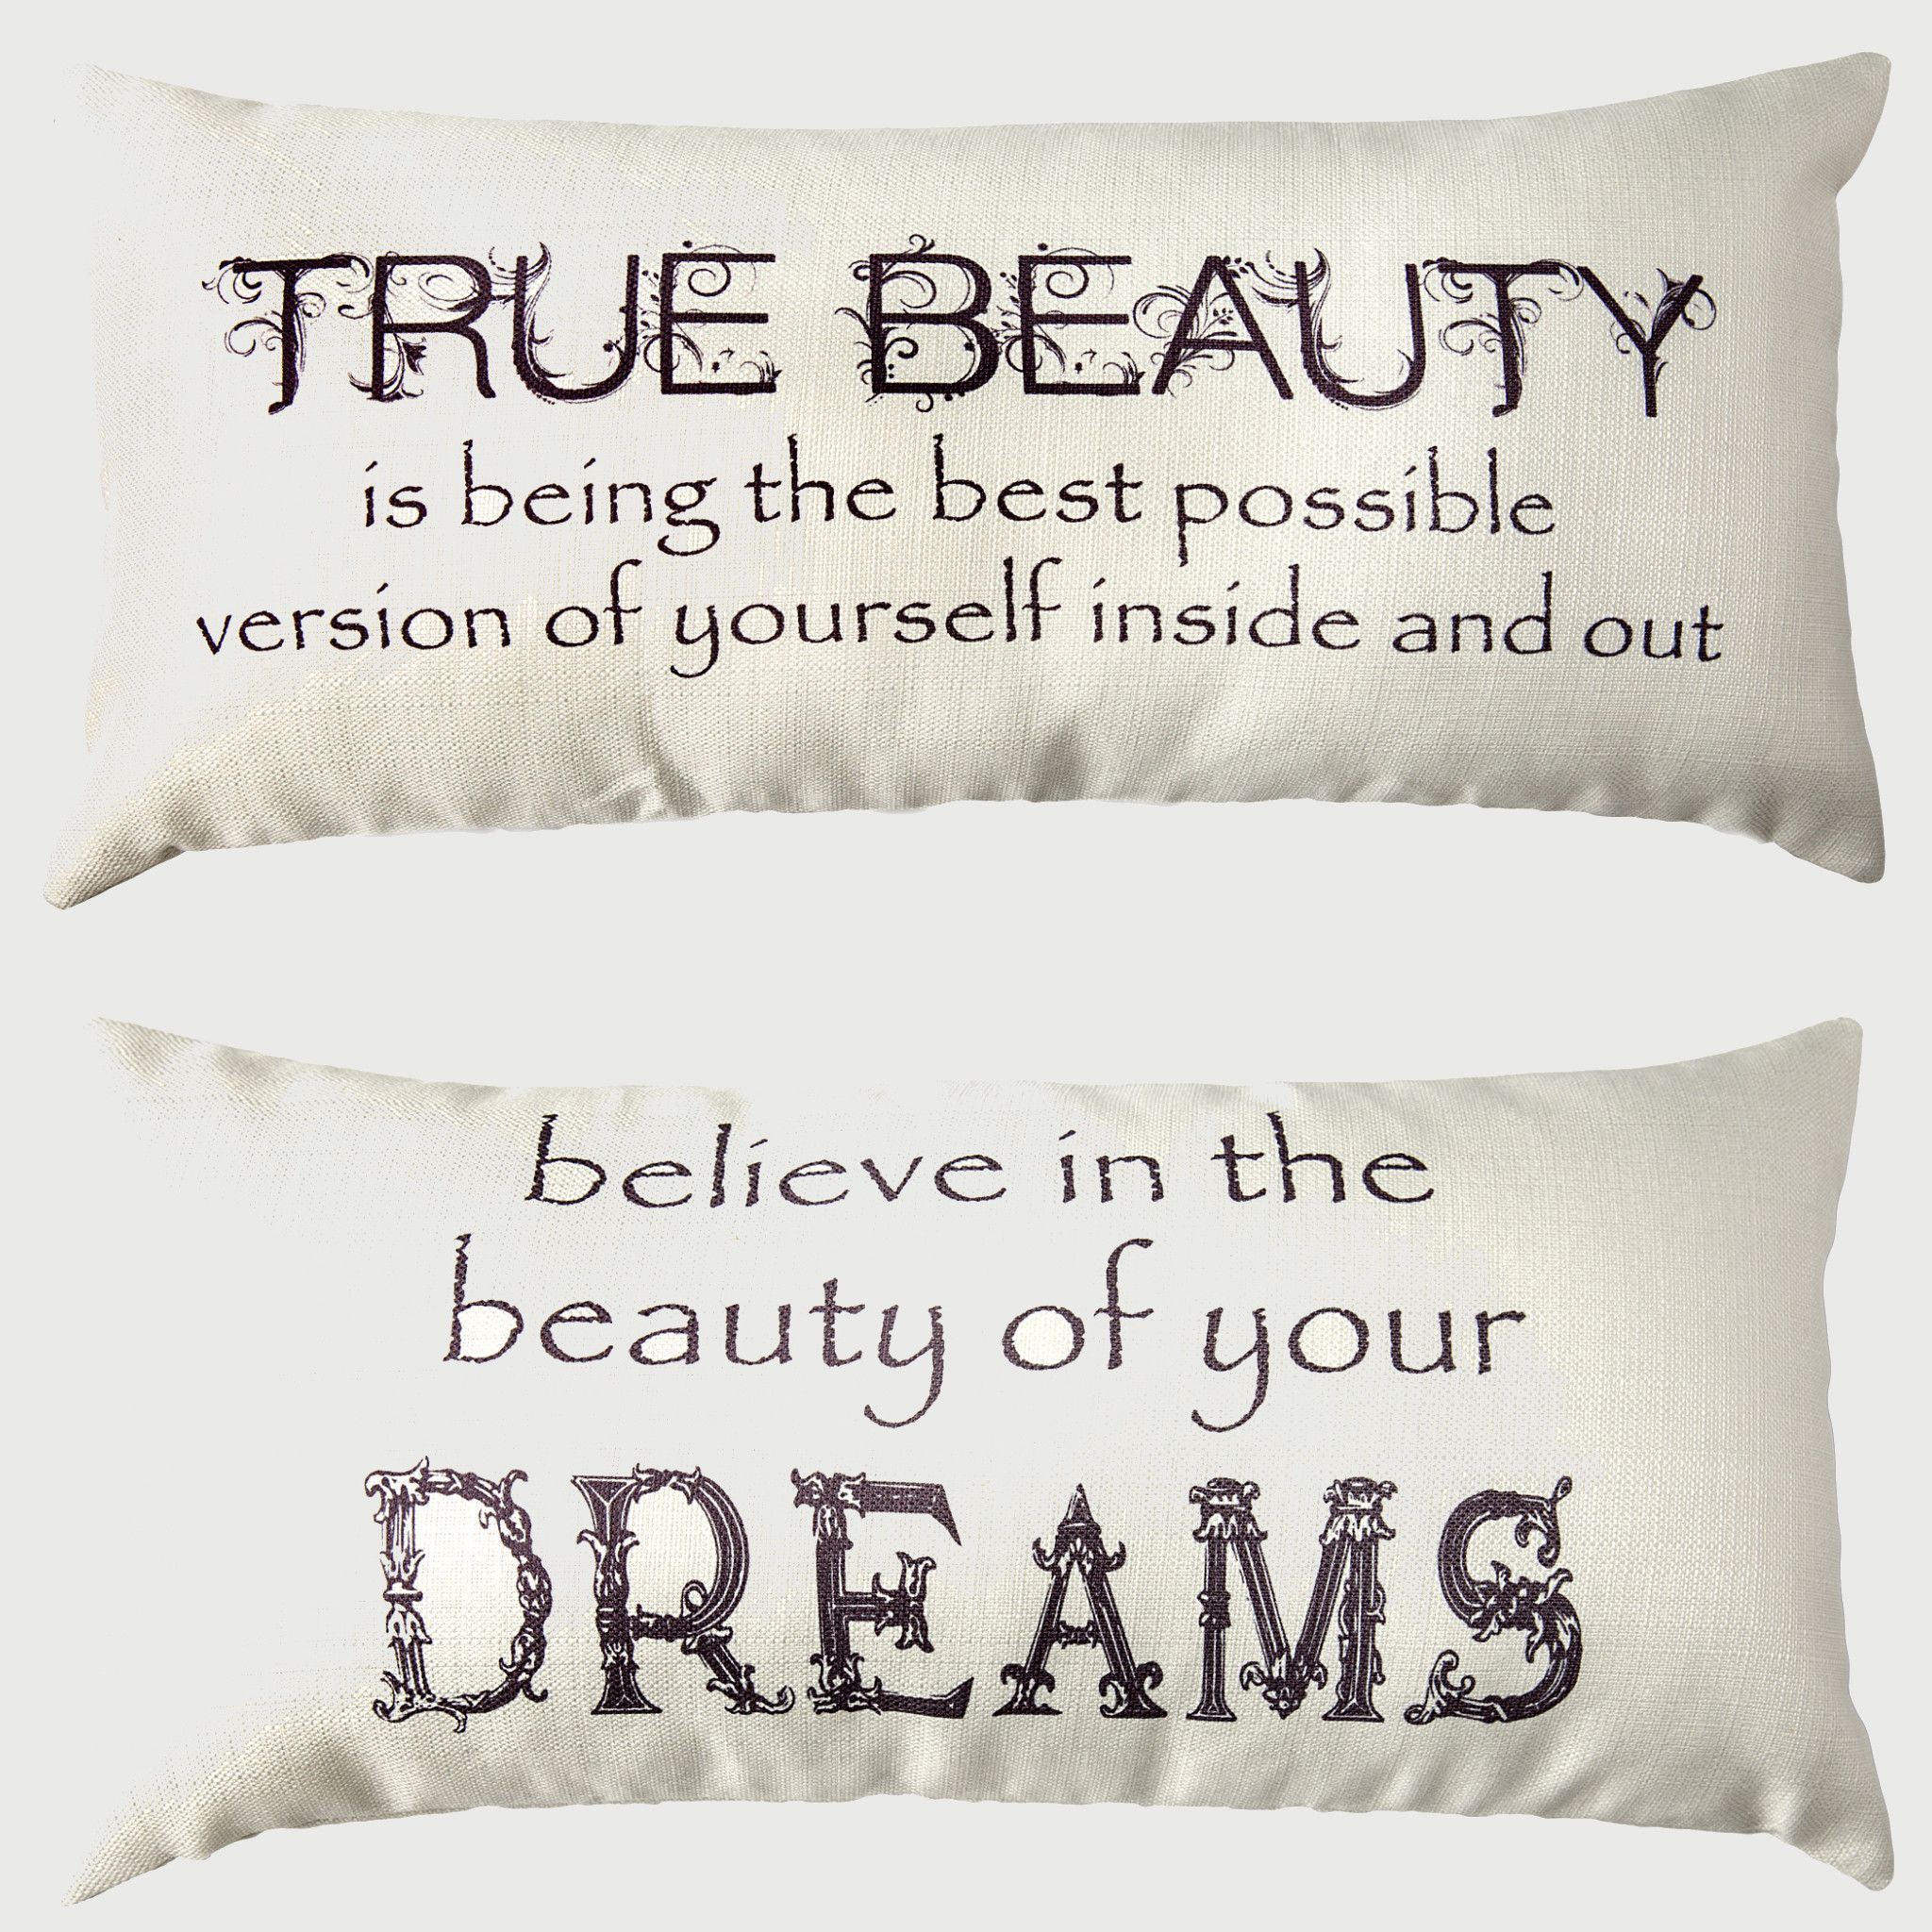 for sequin the x pillow reversible ip pillows decorative mainstays teens collection mermaid shop